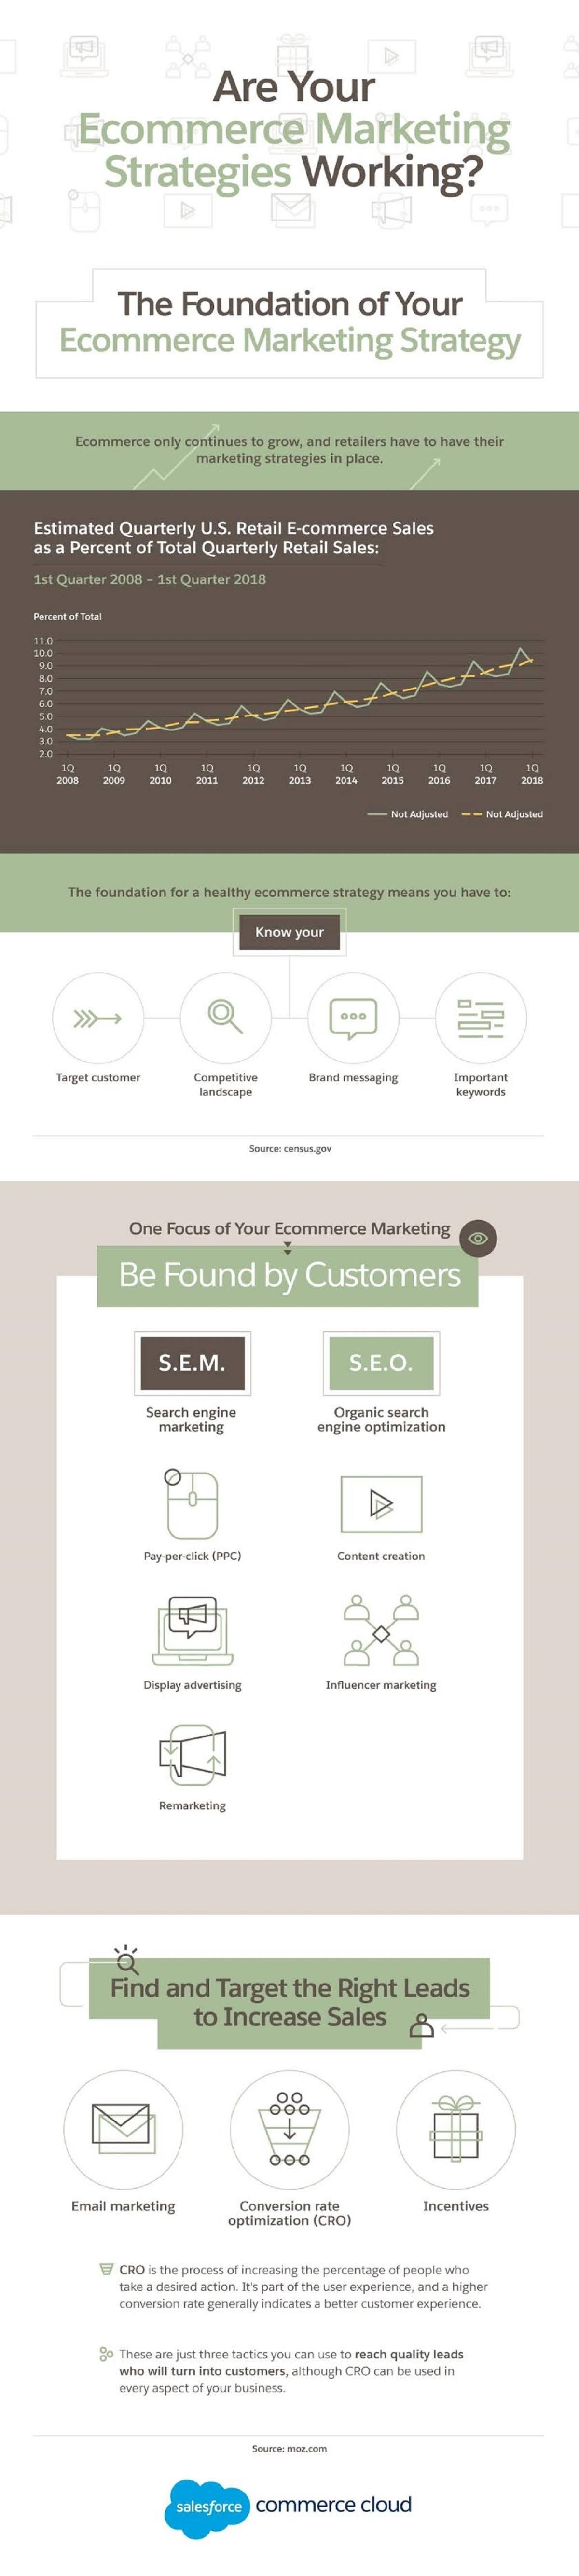 are-your-ecommerce-marketing-strategies-working-infographic